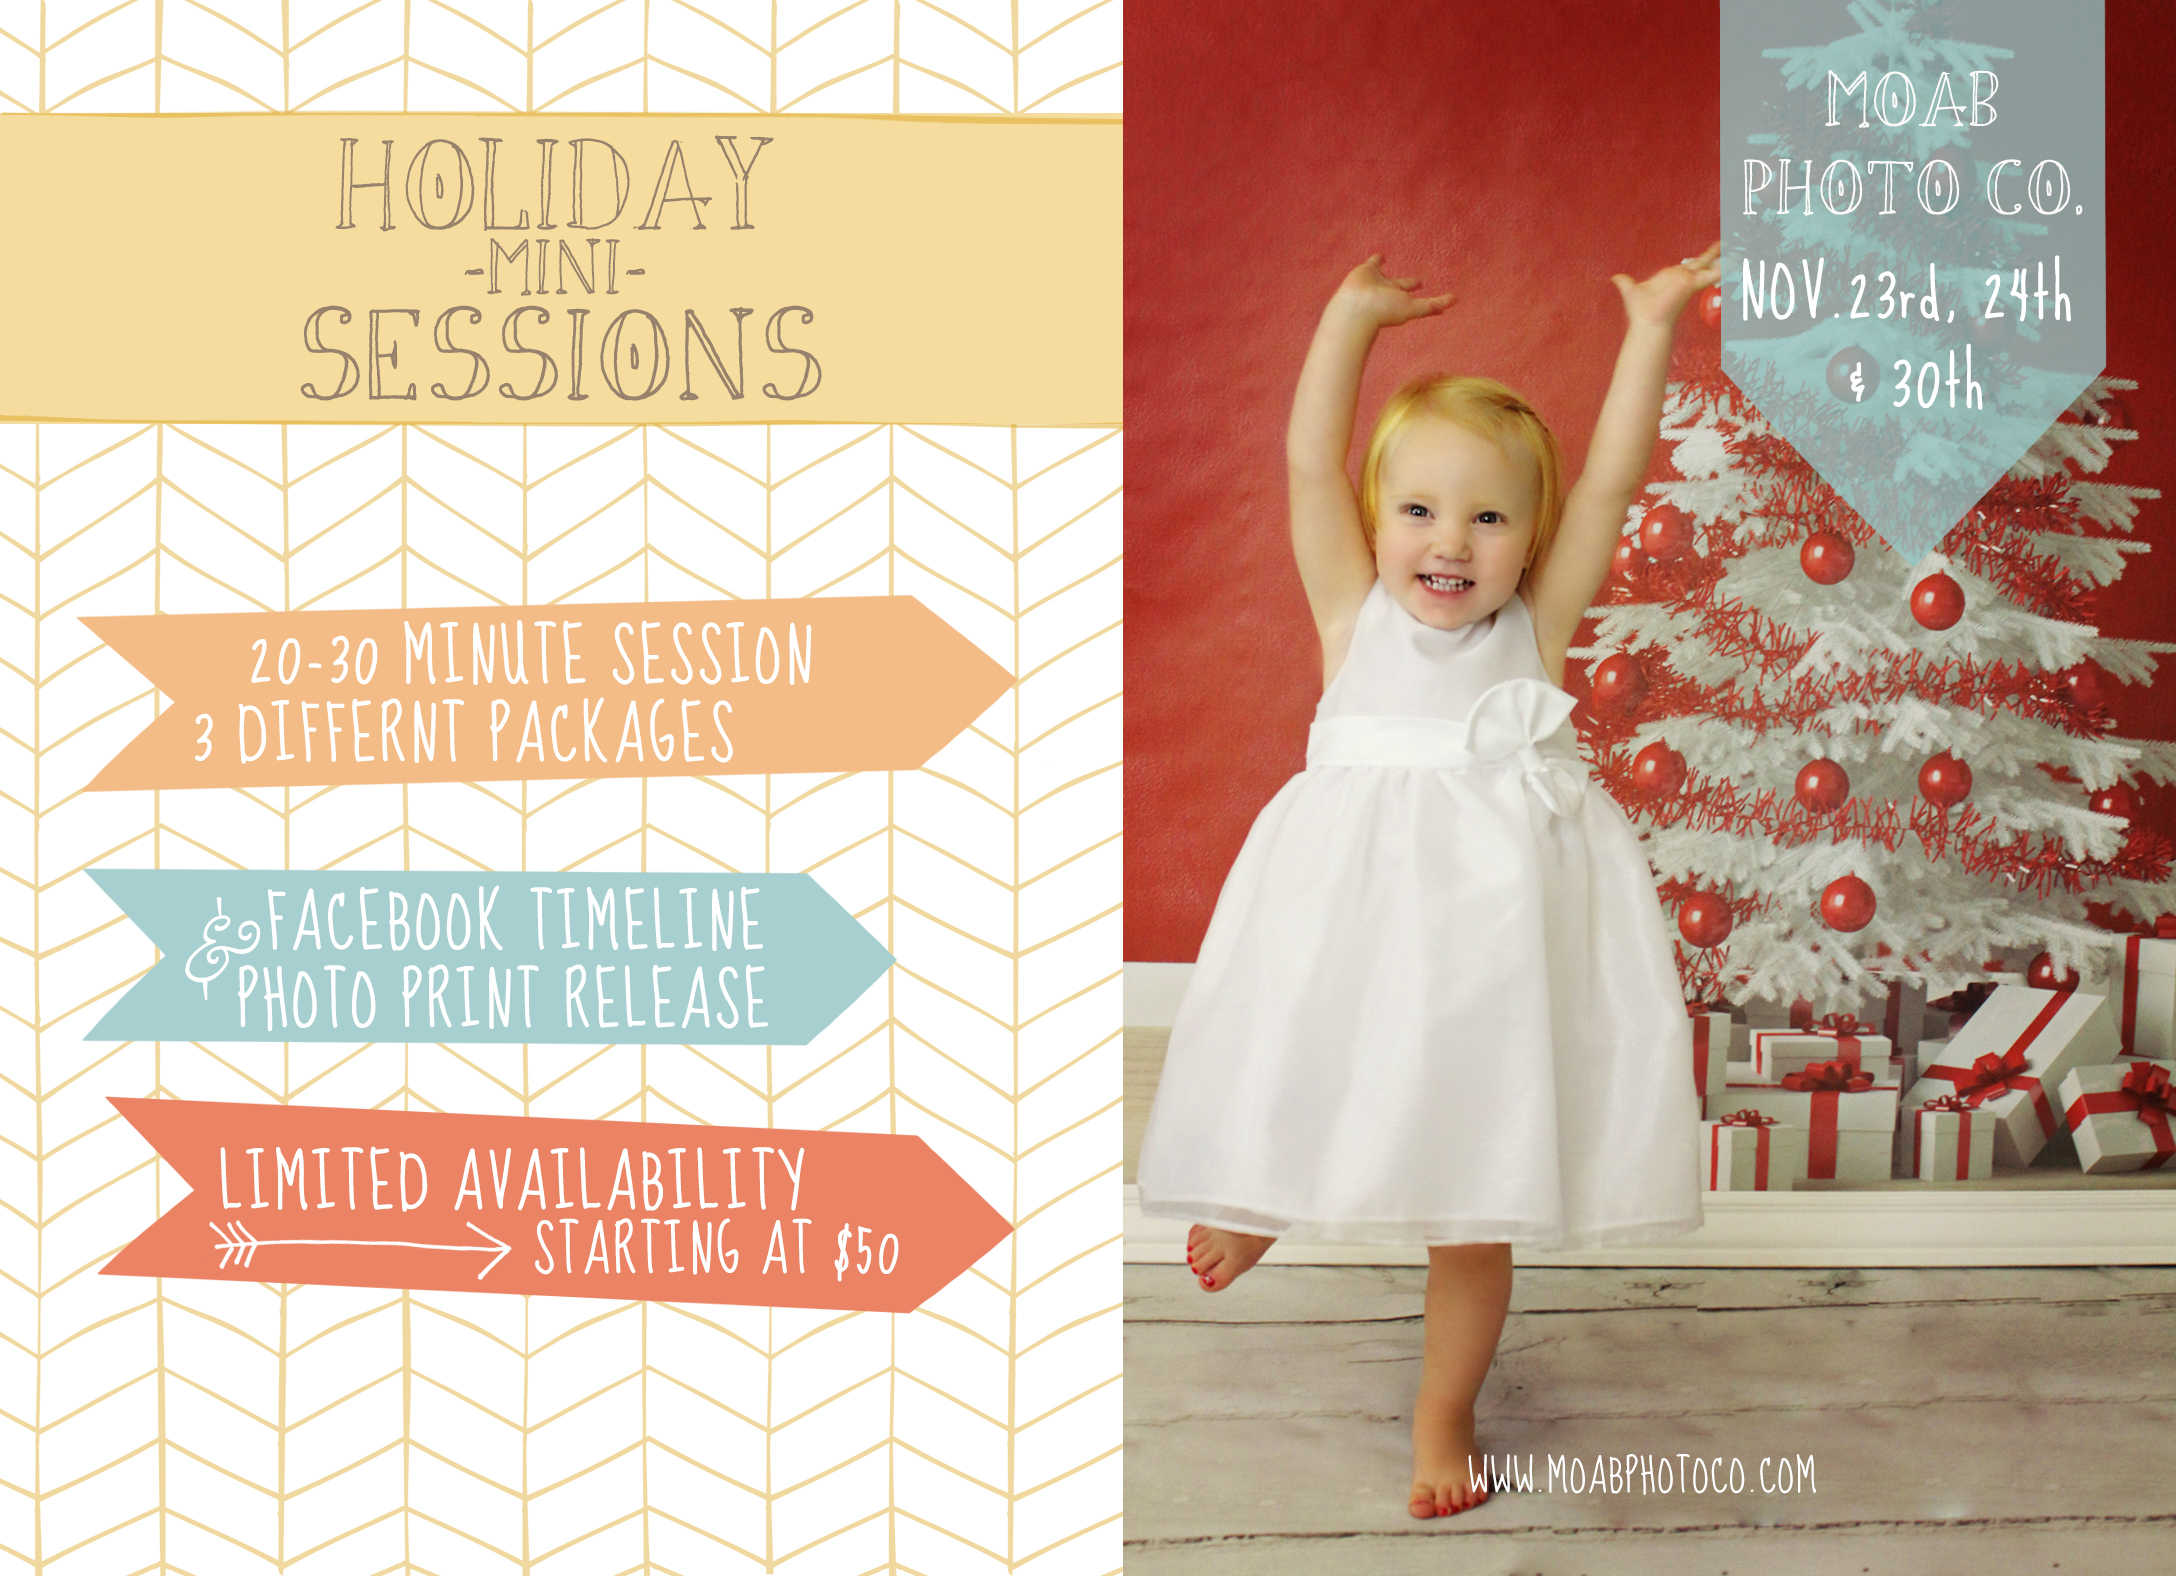 Holiday Mini Sessions 2013.jpg